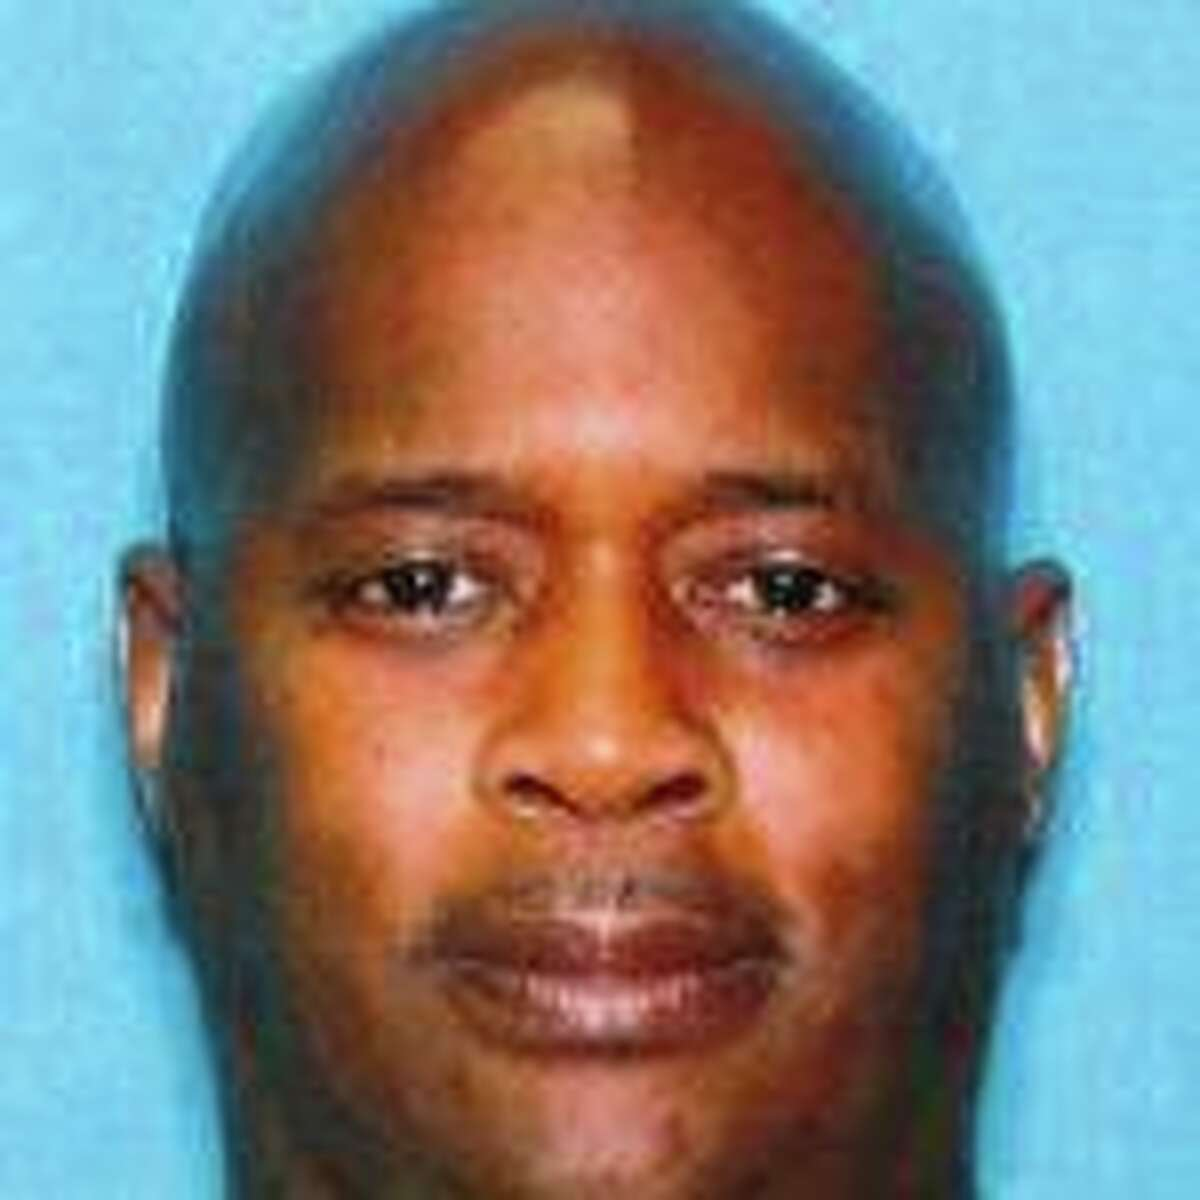 Police have issued a warrant for the arrest of Fredrick Carnell Harden, age 50 from Beaumont after a shooting that occurred Christmas morning. Police say the suspect is considered armed and dangerous.